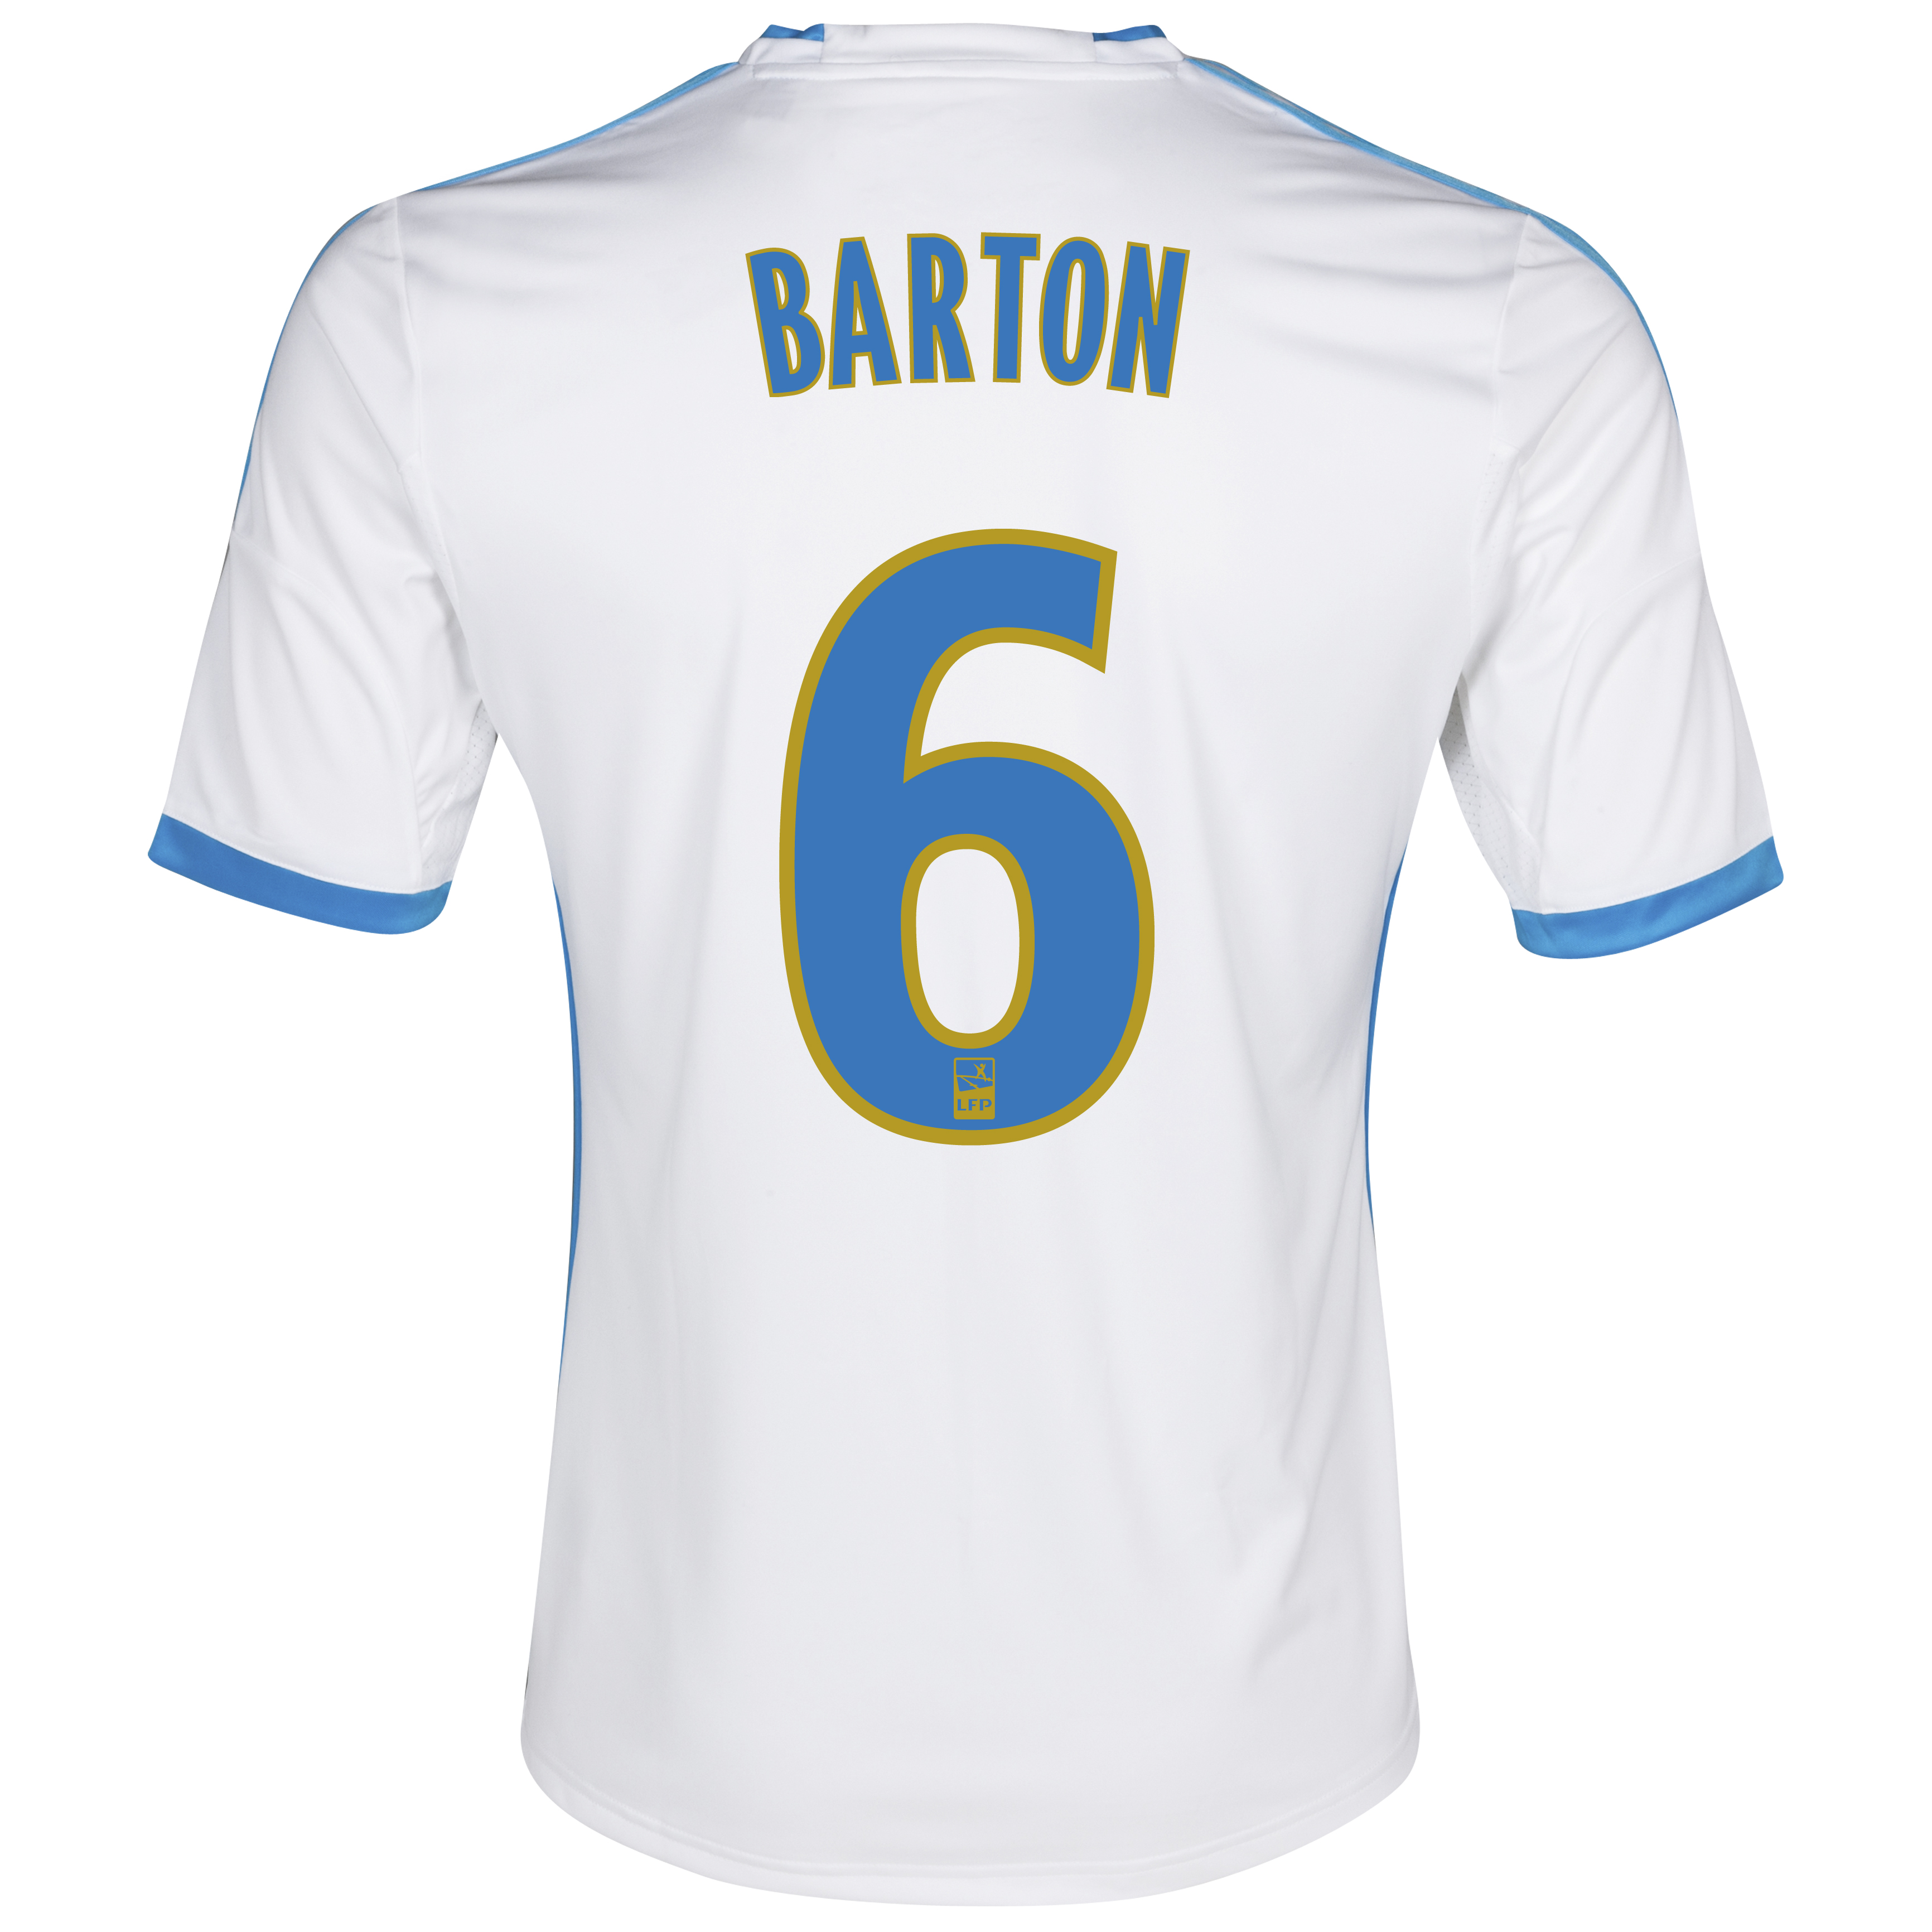 Olympique De Marseille Home Shirt SS 2013/14 - Mens White with Barton 6 printing